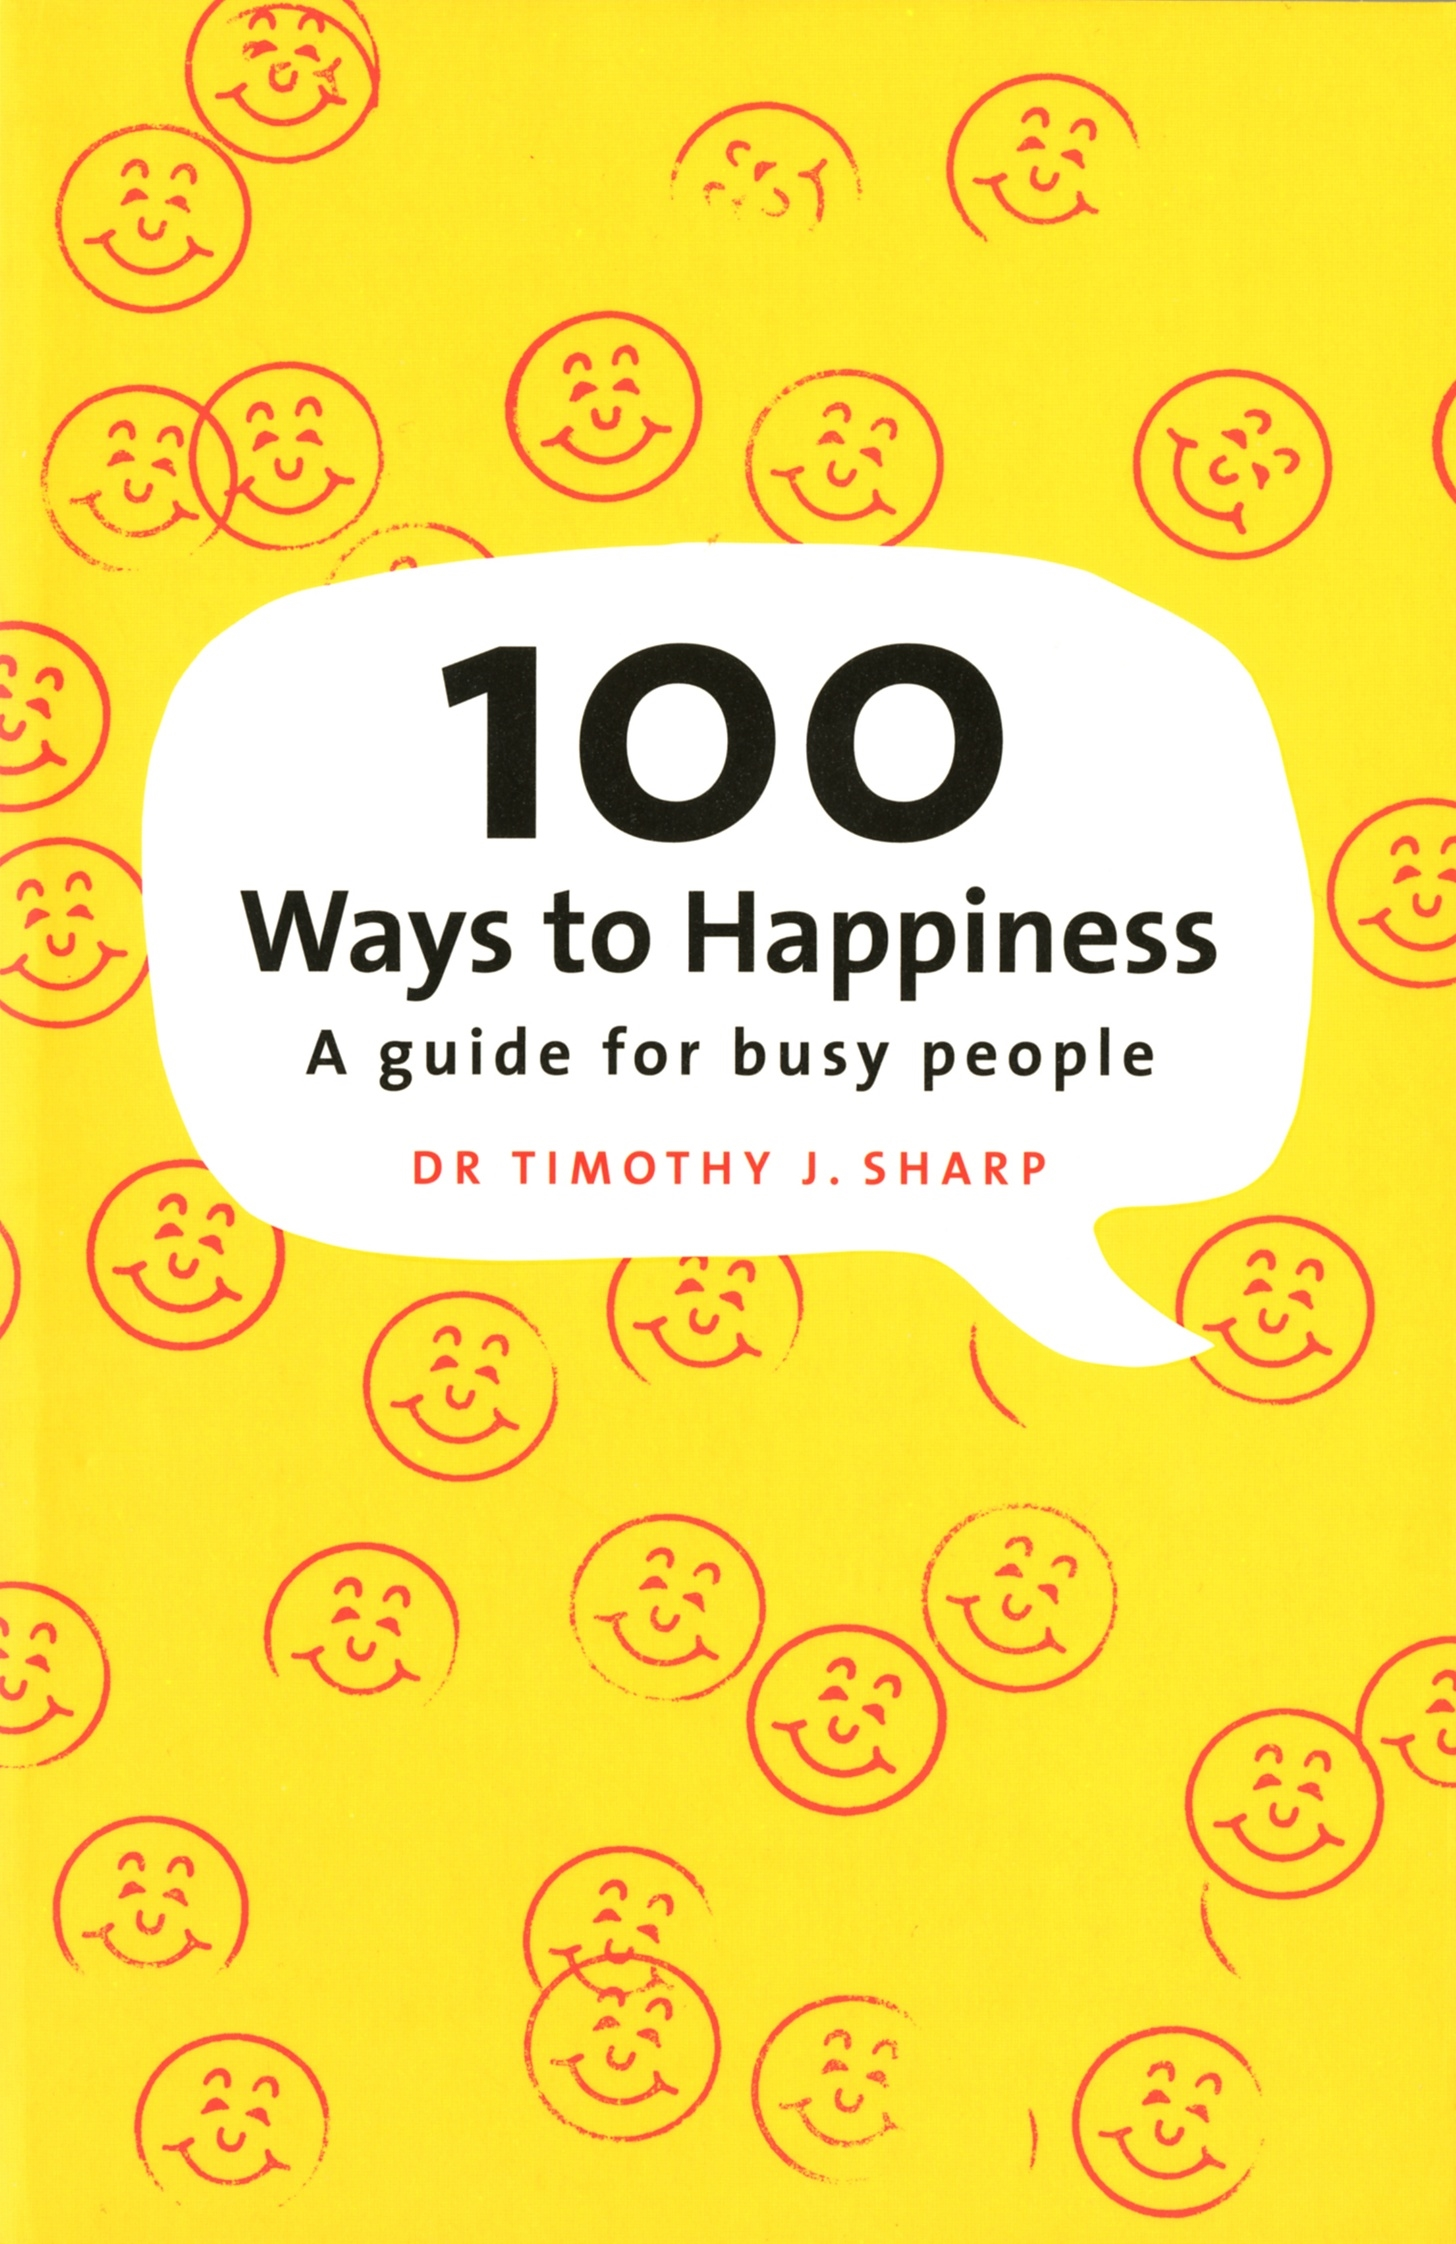 100 Ways To Happiness. A Guide For Busy People